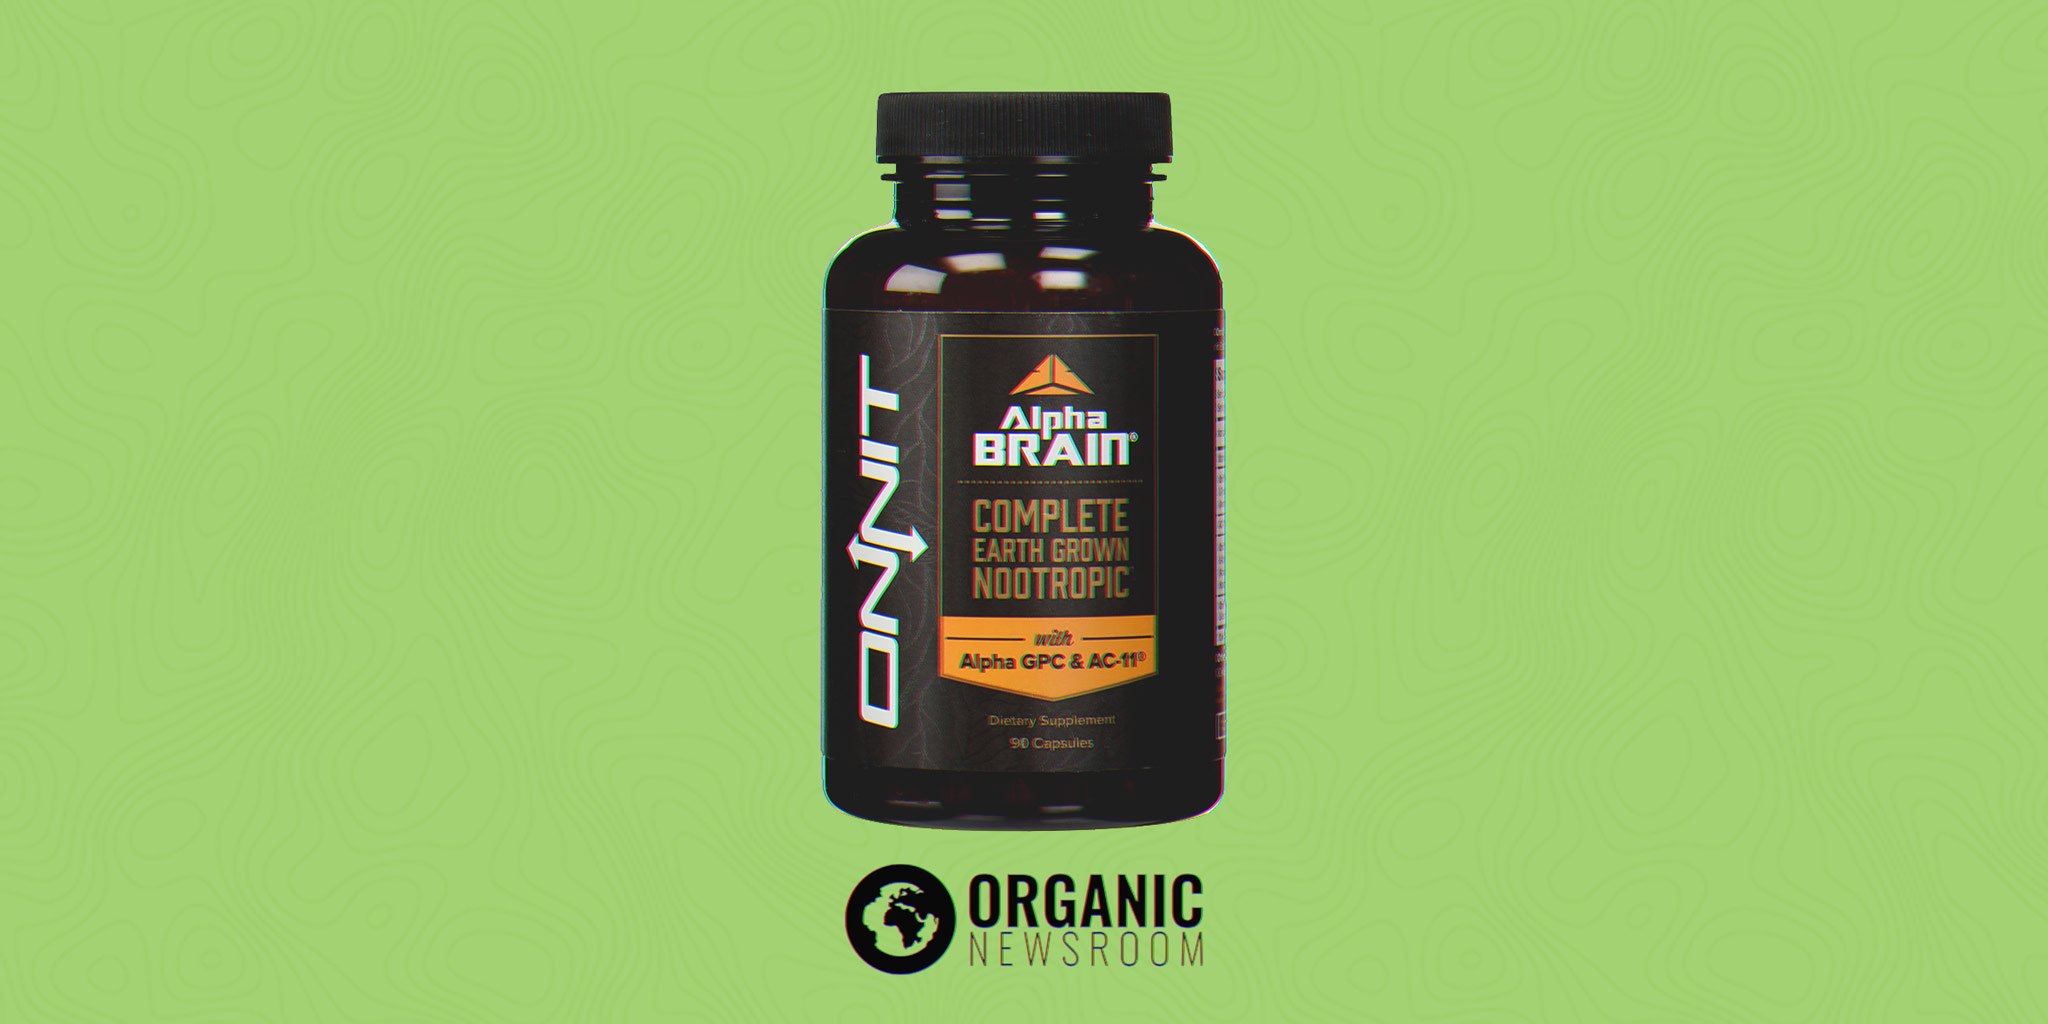 0075-ONNIT-ALPHA-BRAIN-NOOTROPIC-ORGANIC-NEWSROOM-BANNER